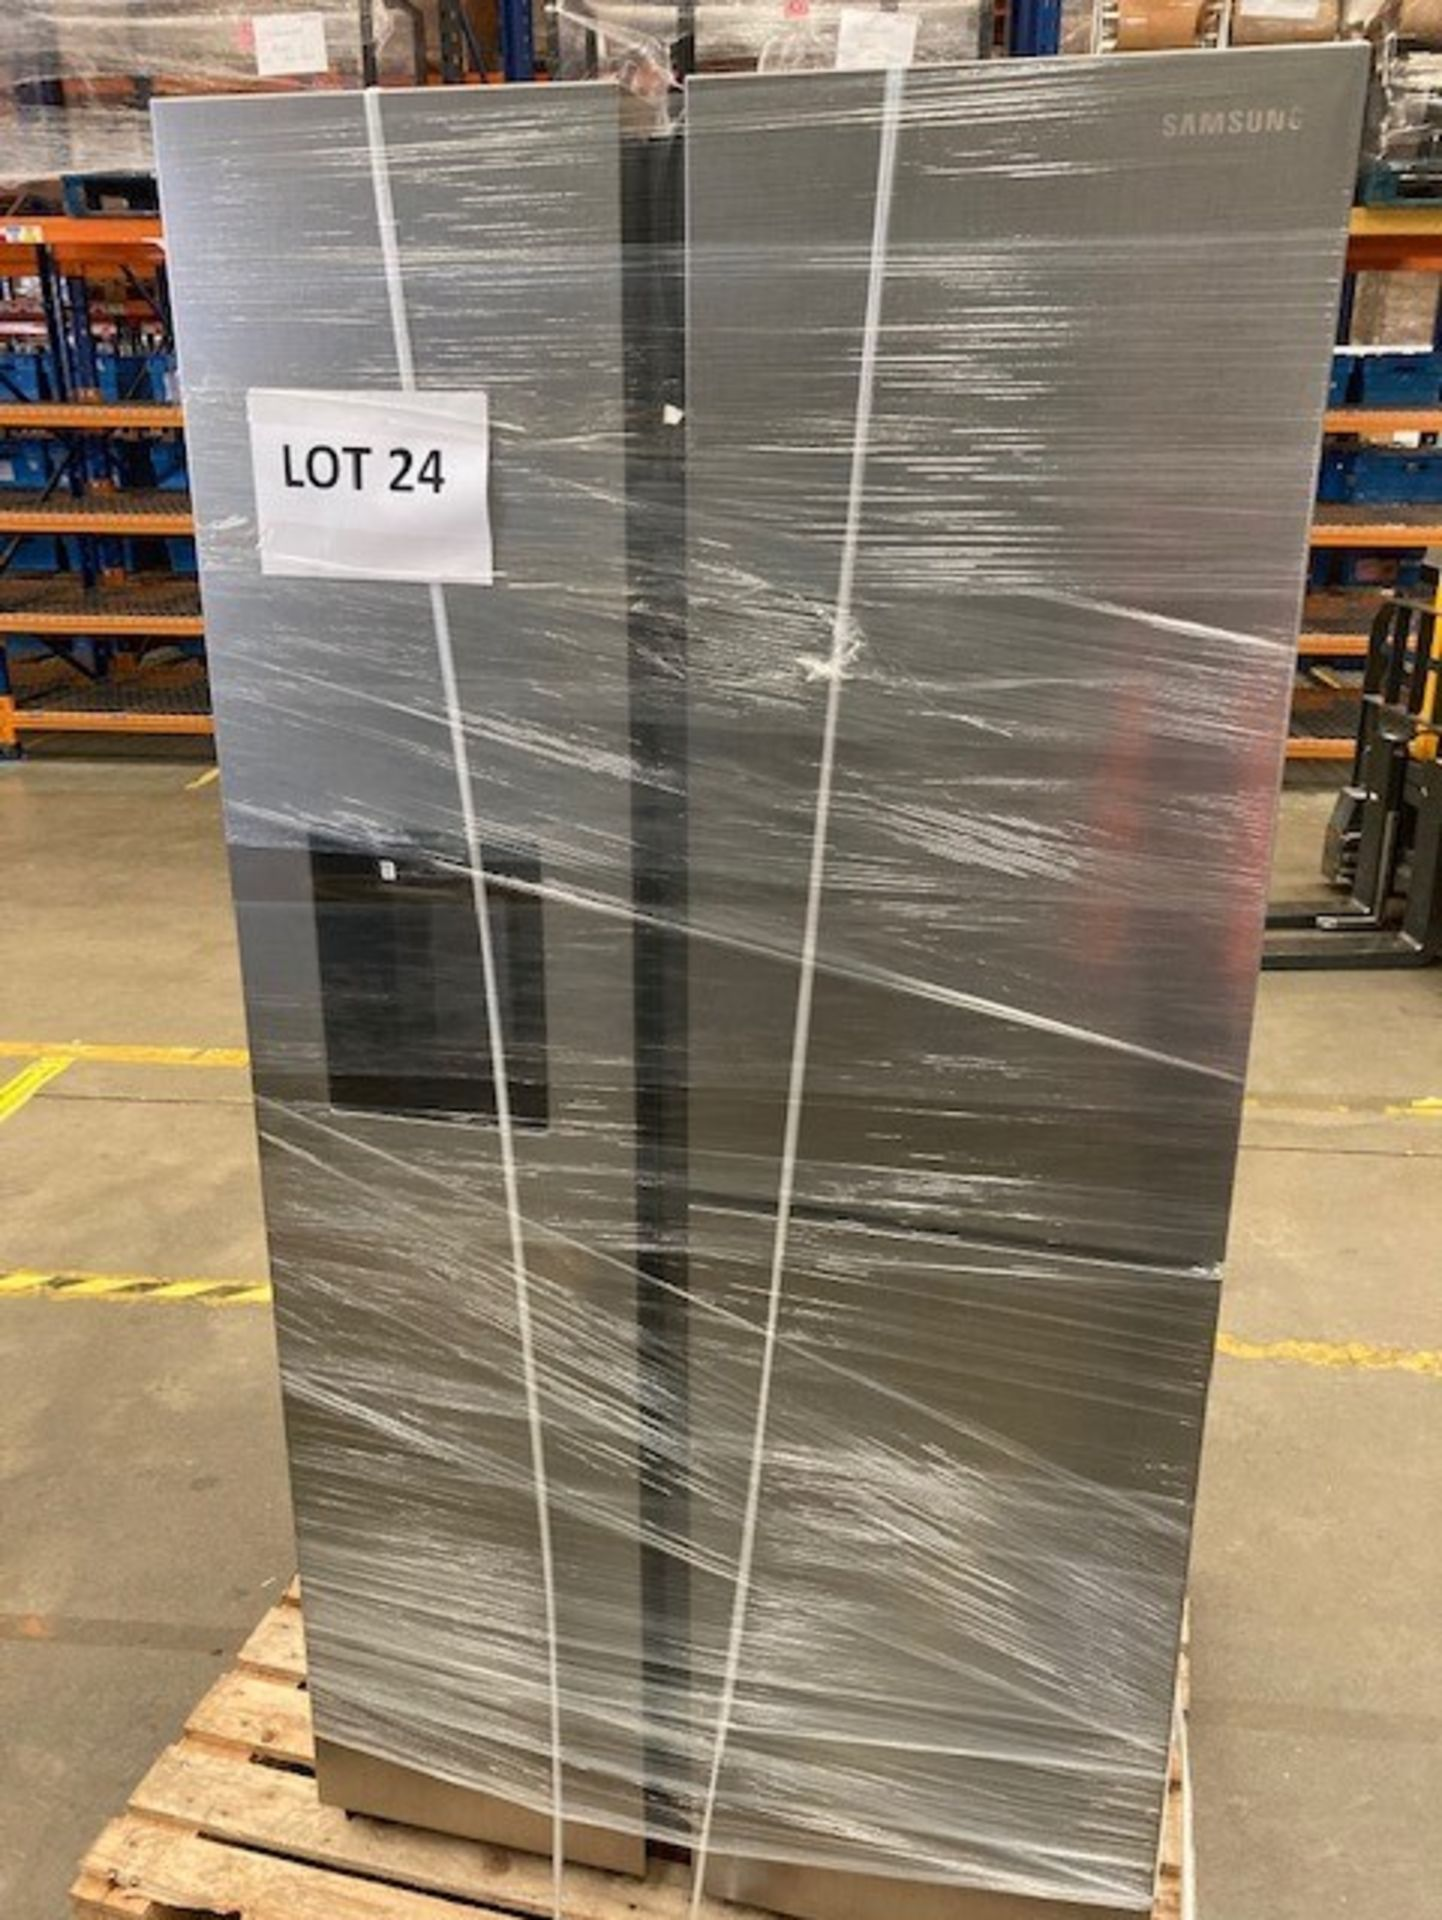 Lot 24 - Pallet of 1 Samsung Water & Ice Fridge freezer. Latest selling price £1,769.99*